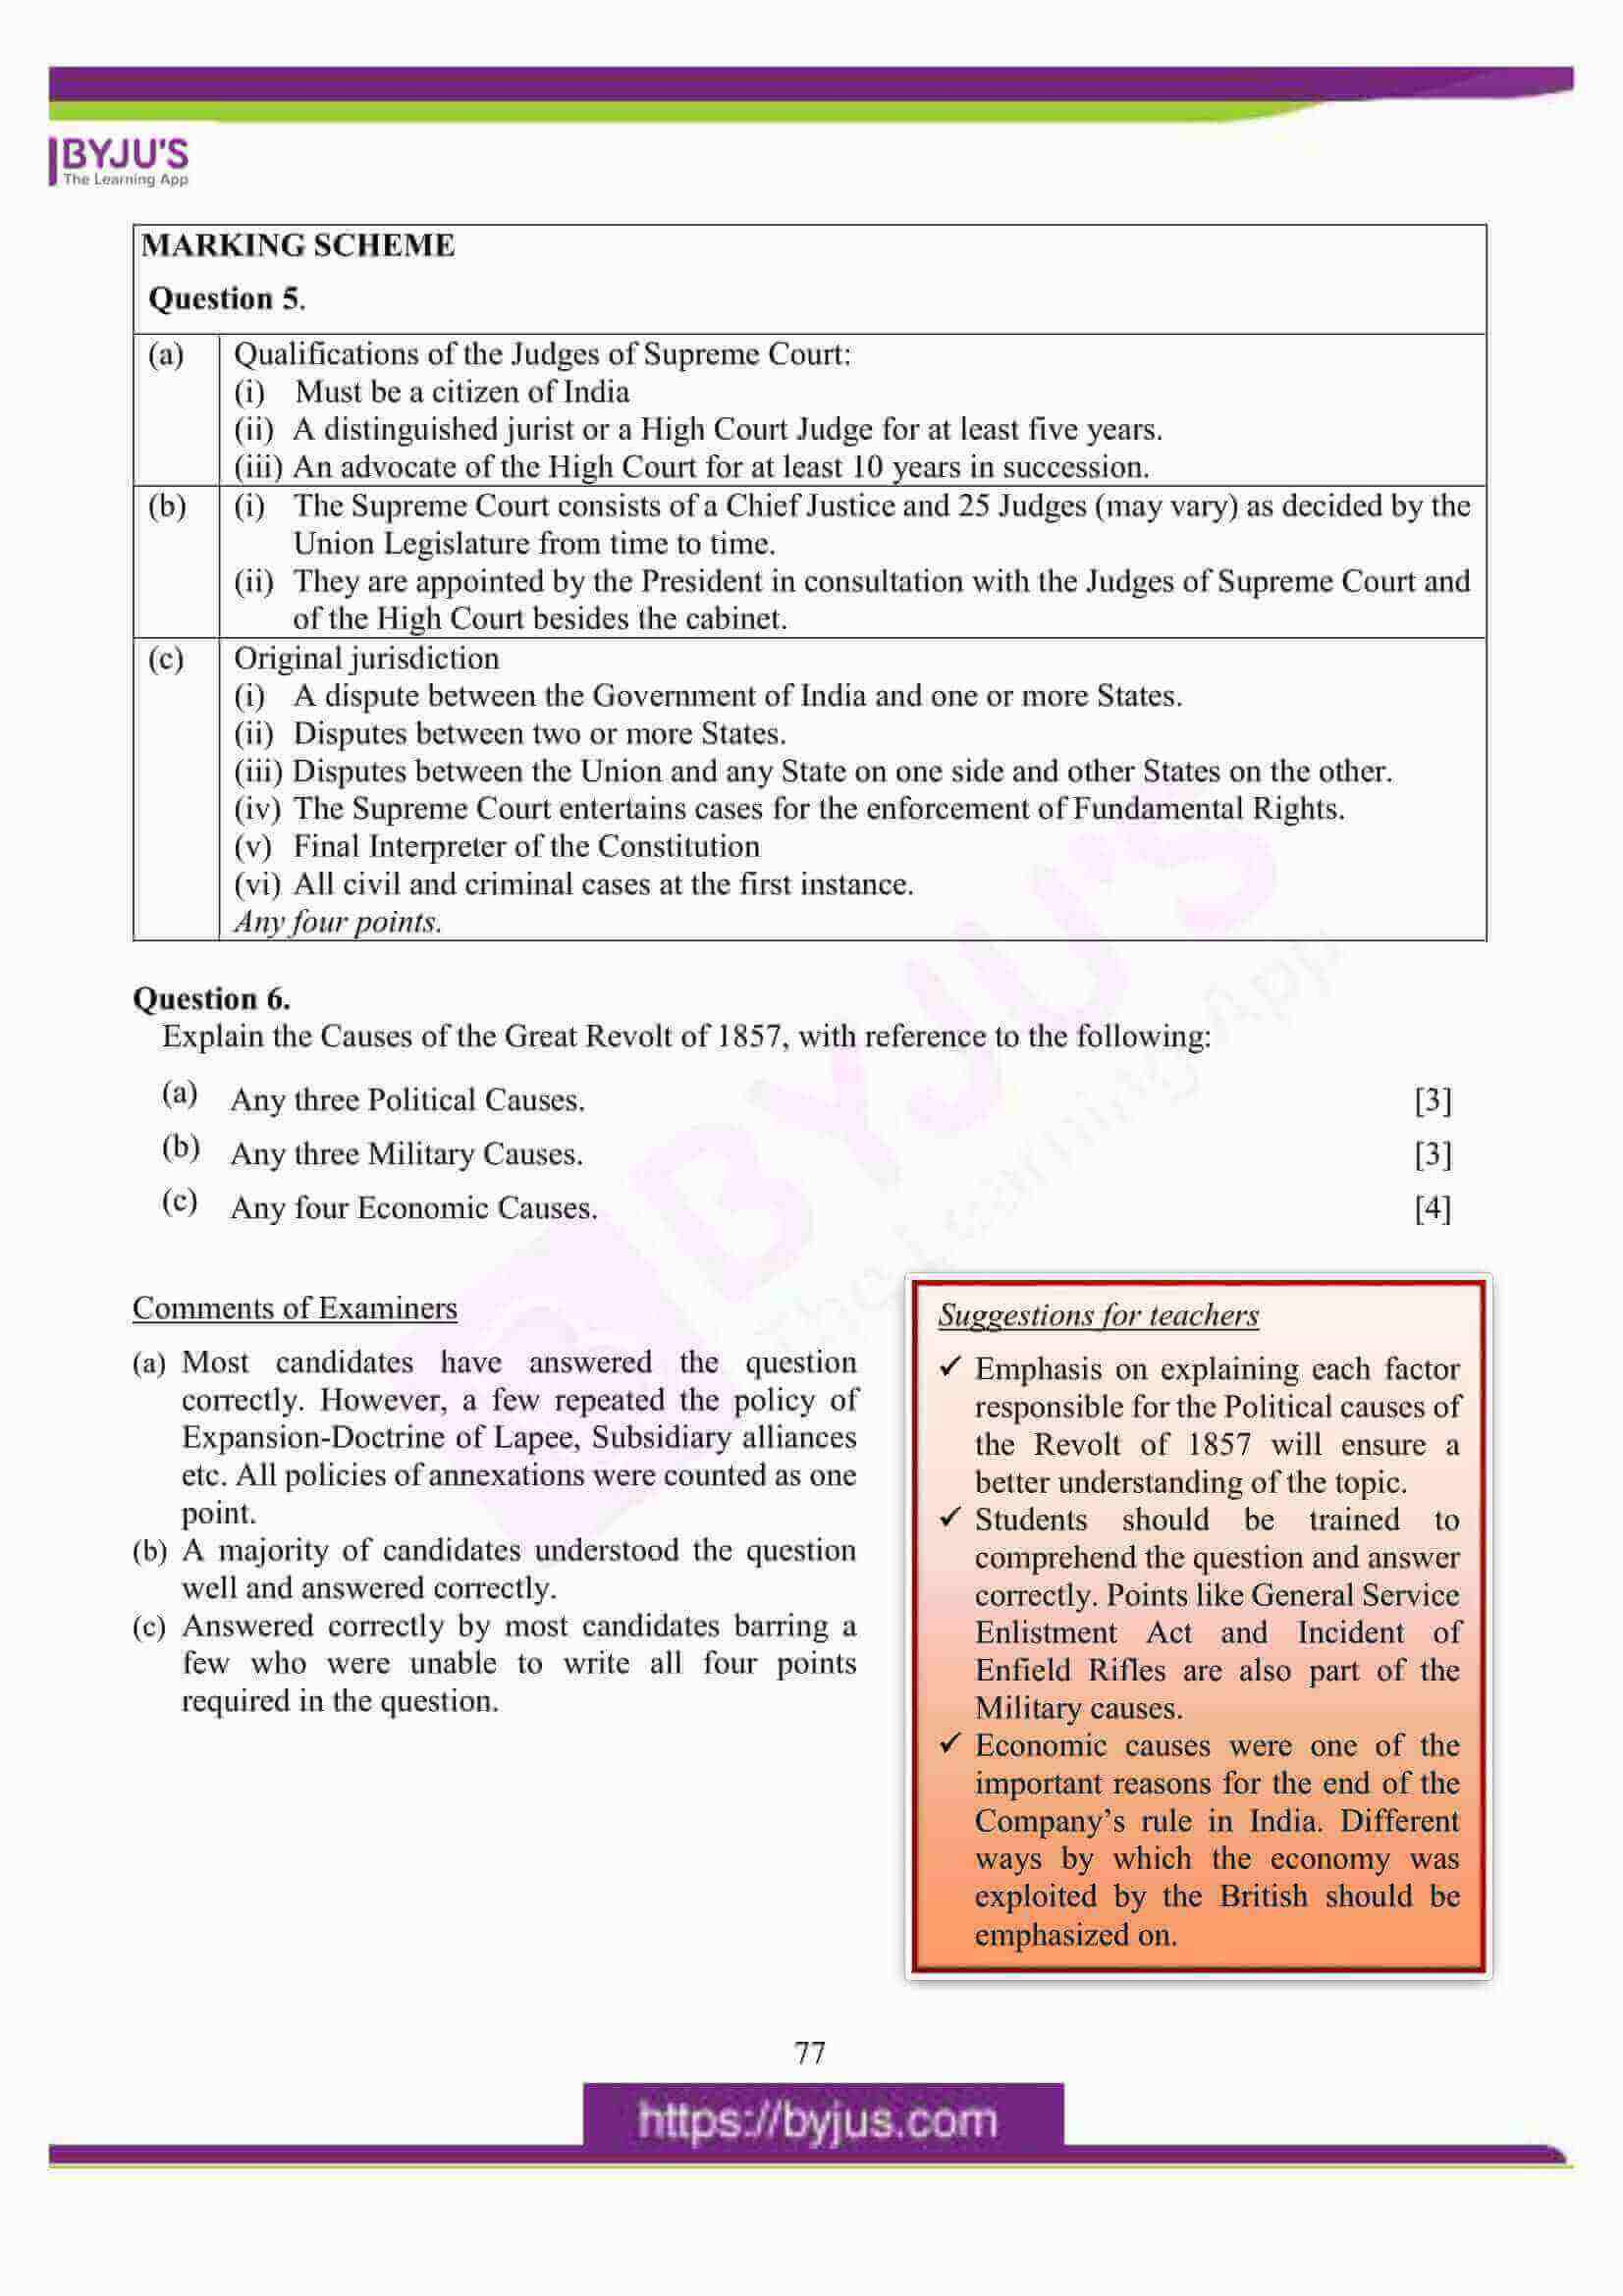 icse class 10 his and civics question paper solution 2016 10